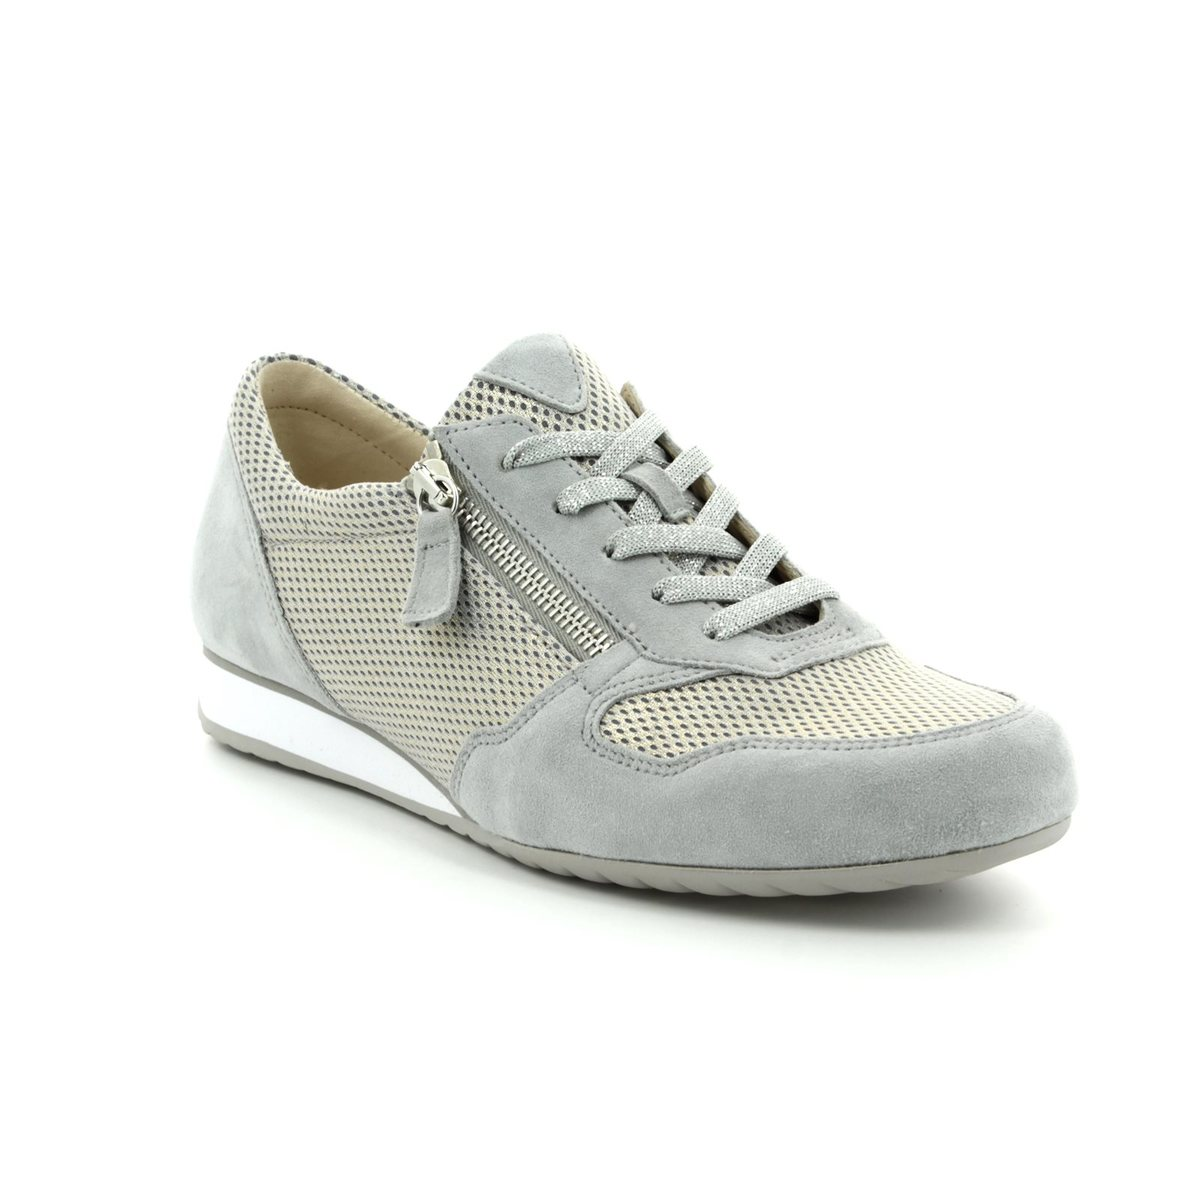 32616079d41 Gabor Trainers - Light Grey - 86.355.40 MAYBELLE